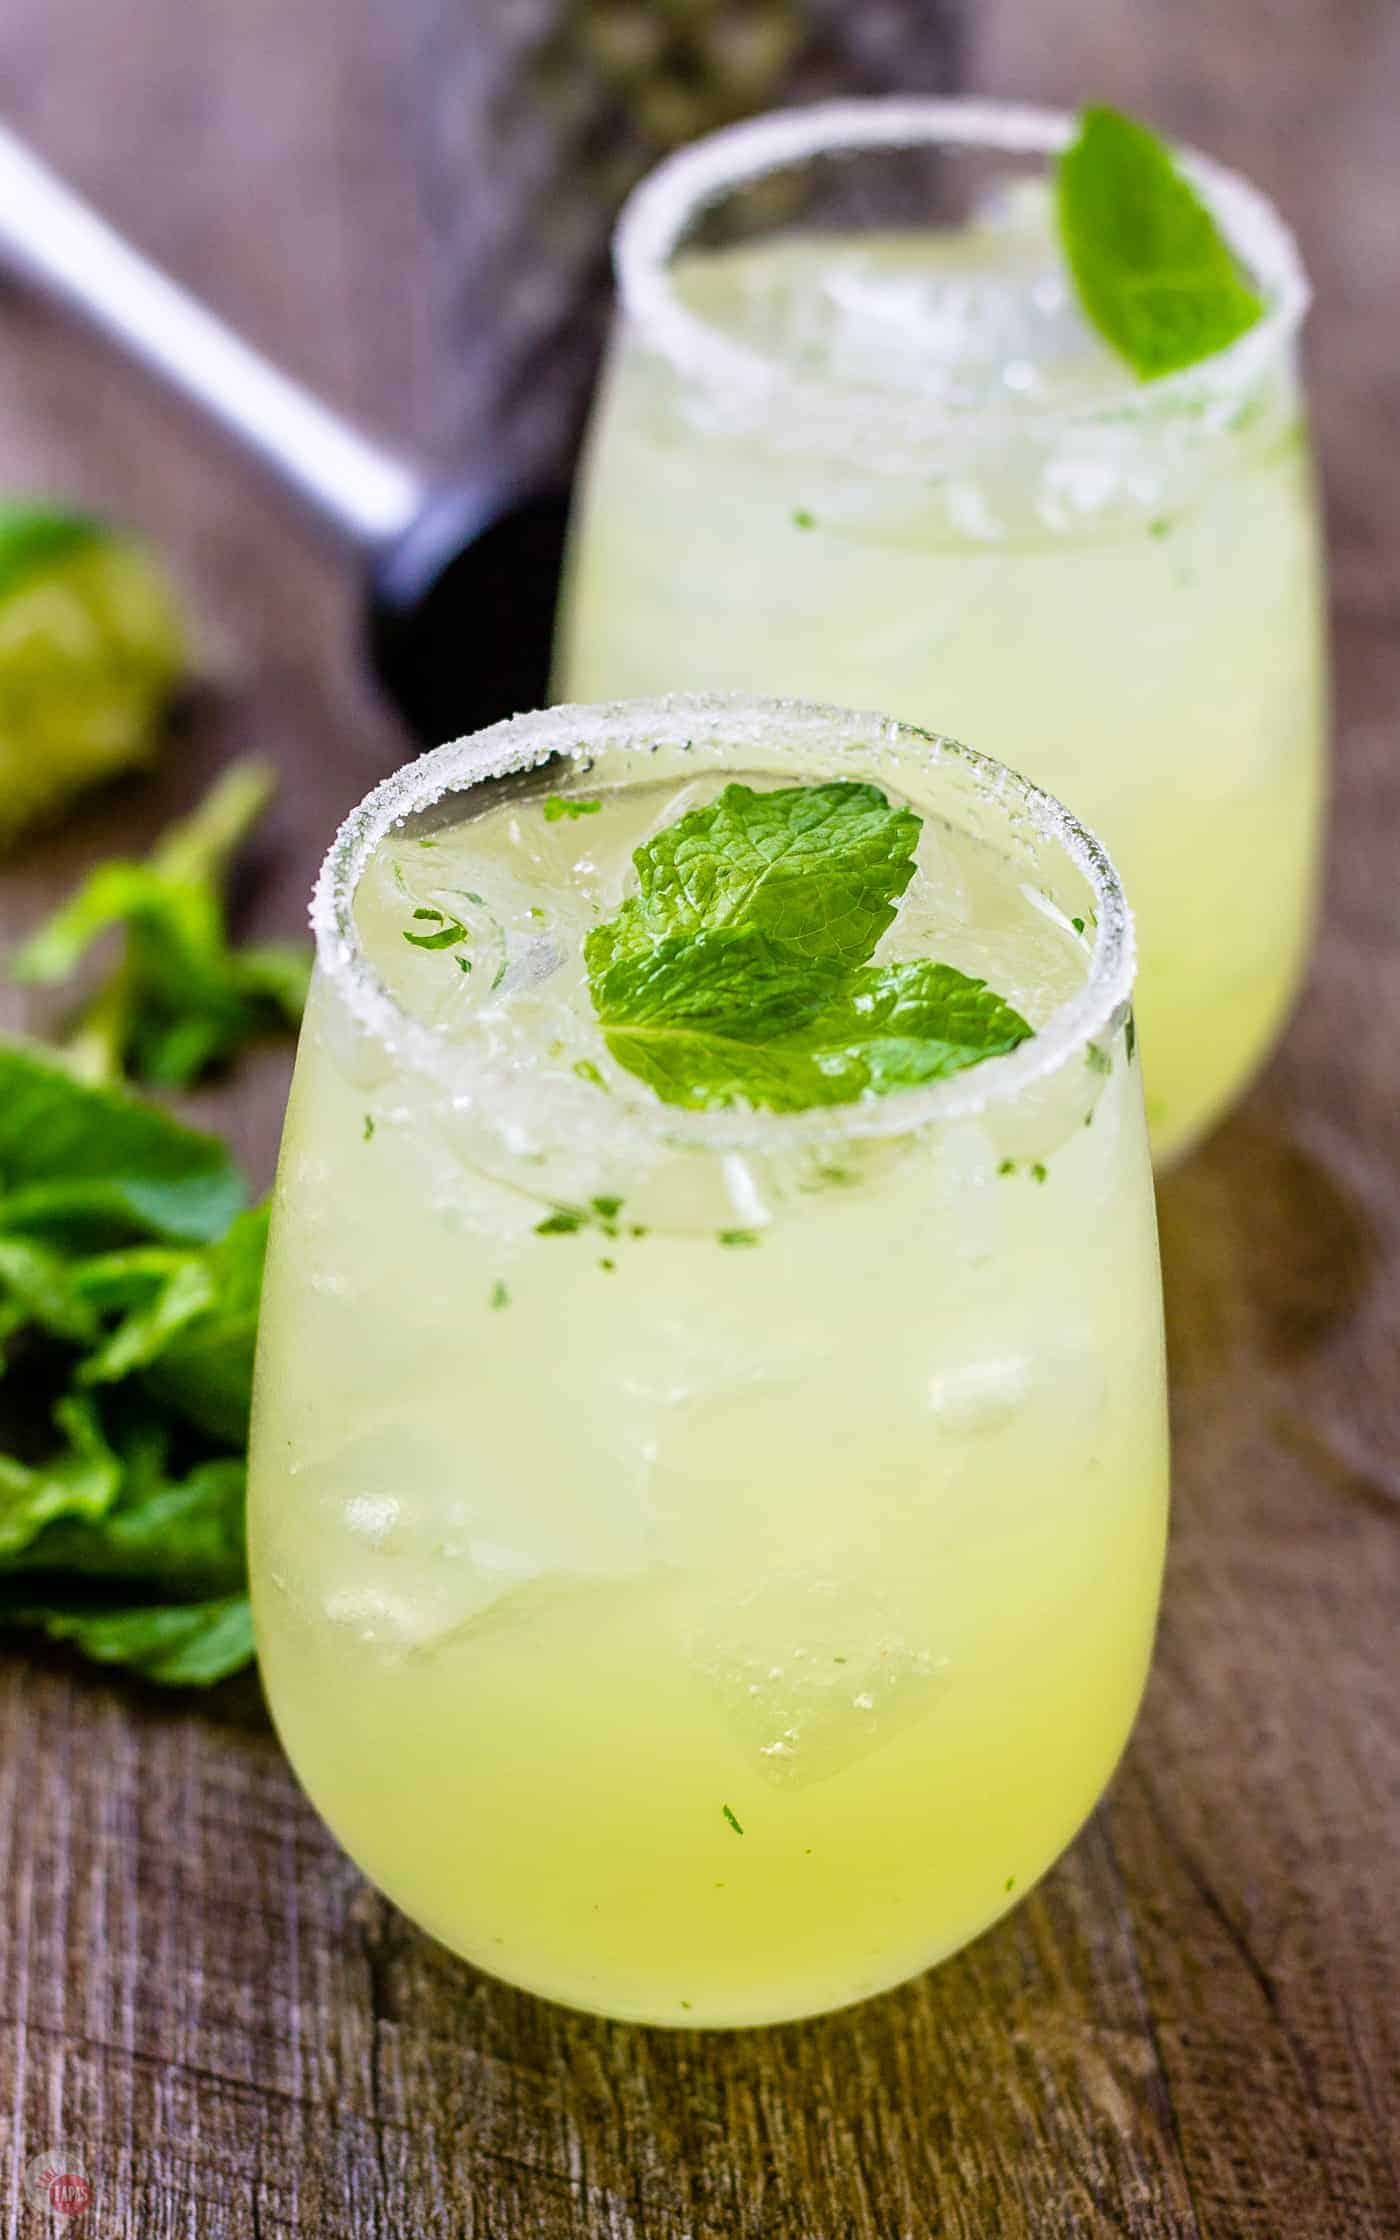 Mariachi mash, lemon lime cocktails on a wooden table